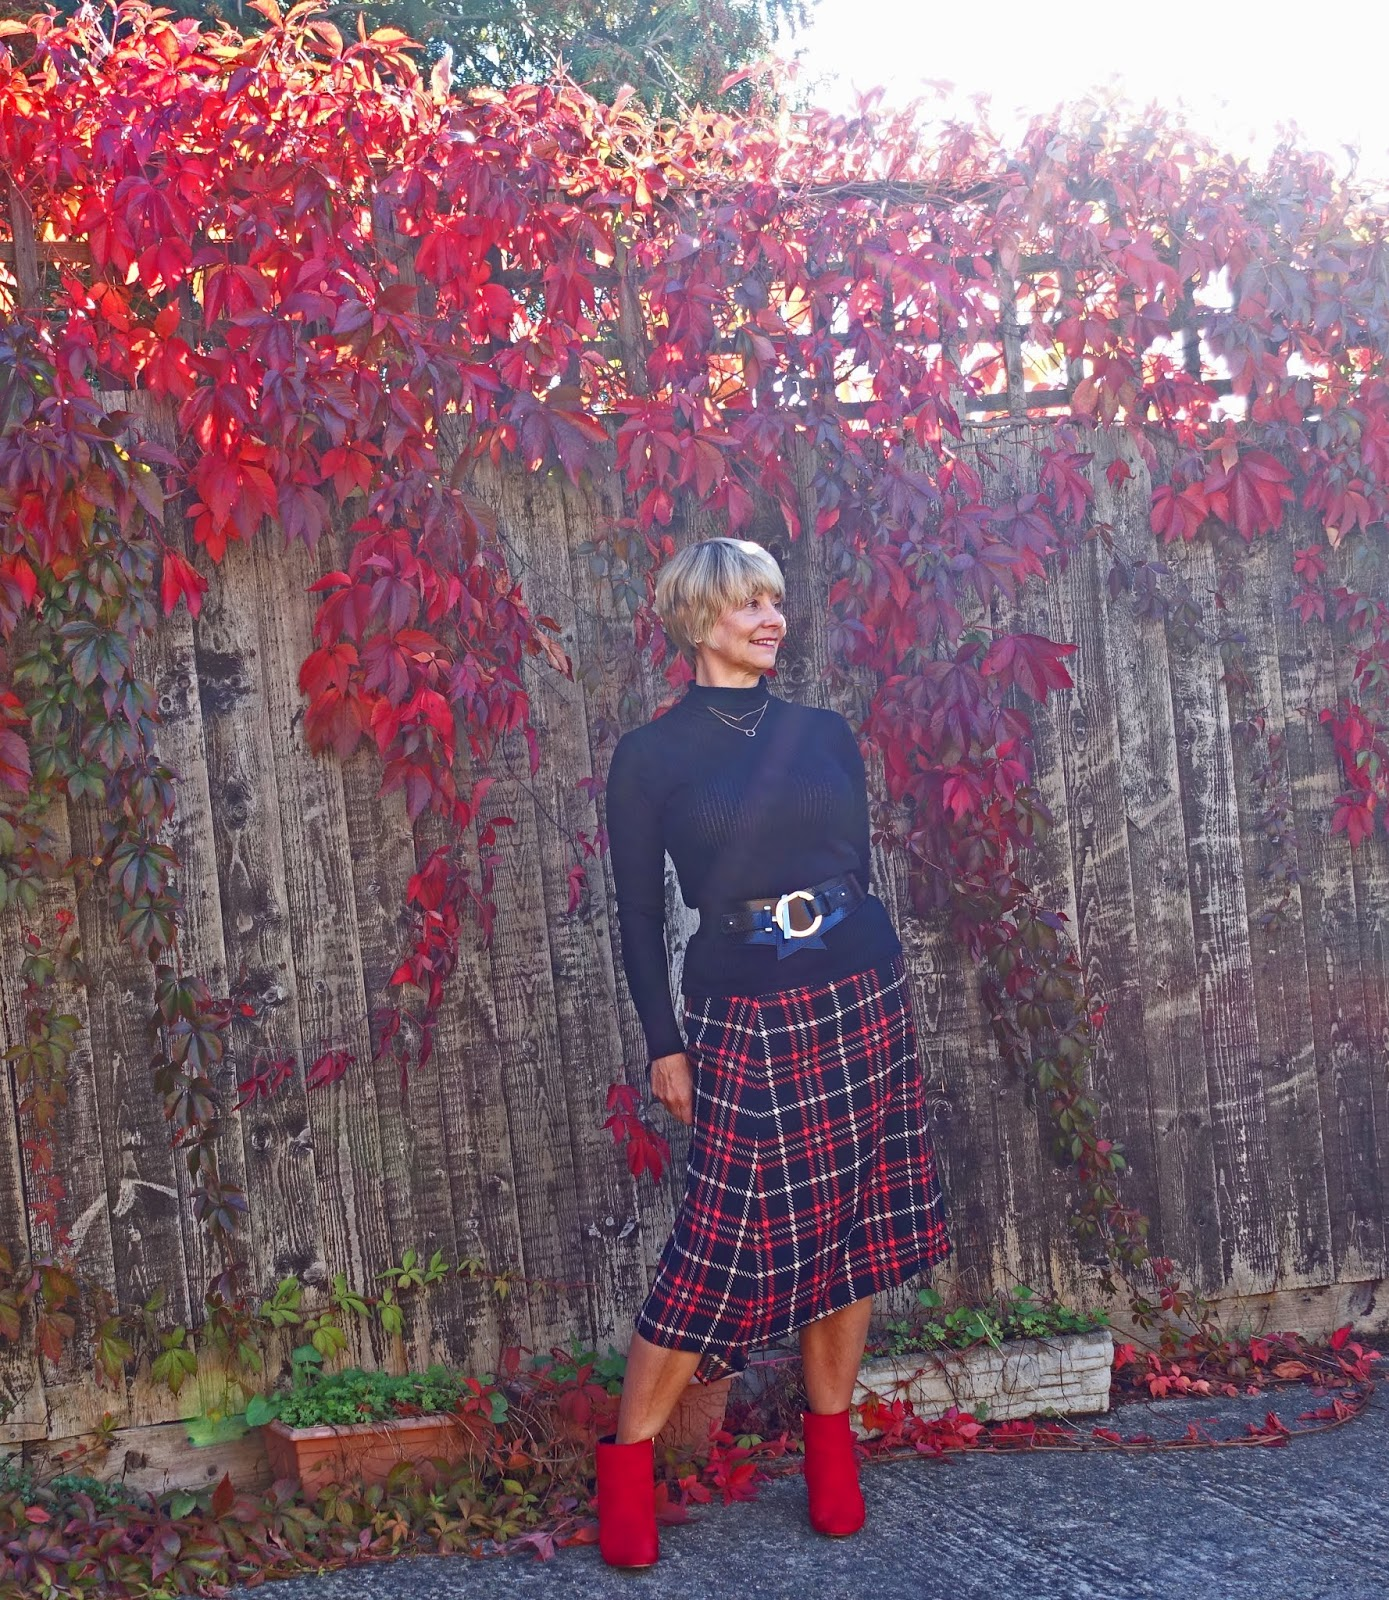 Against a Virginia creeper background, over 45s blogger Gail Hanlon in red check asymmetric skirt, black polo neck, red and black boots and jewellery from Happiness Boutique